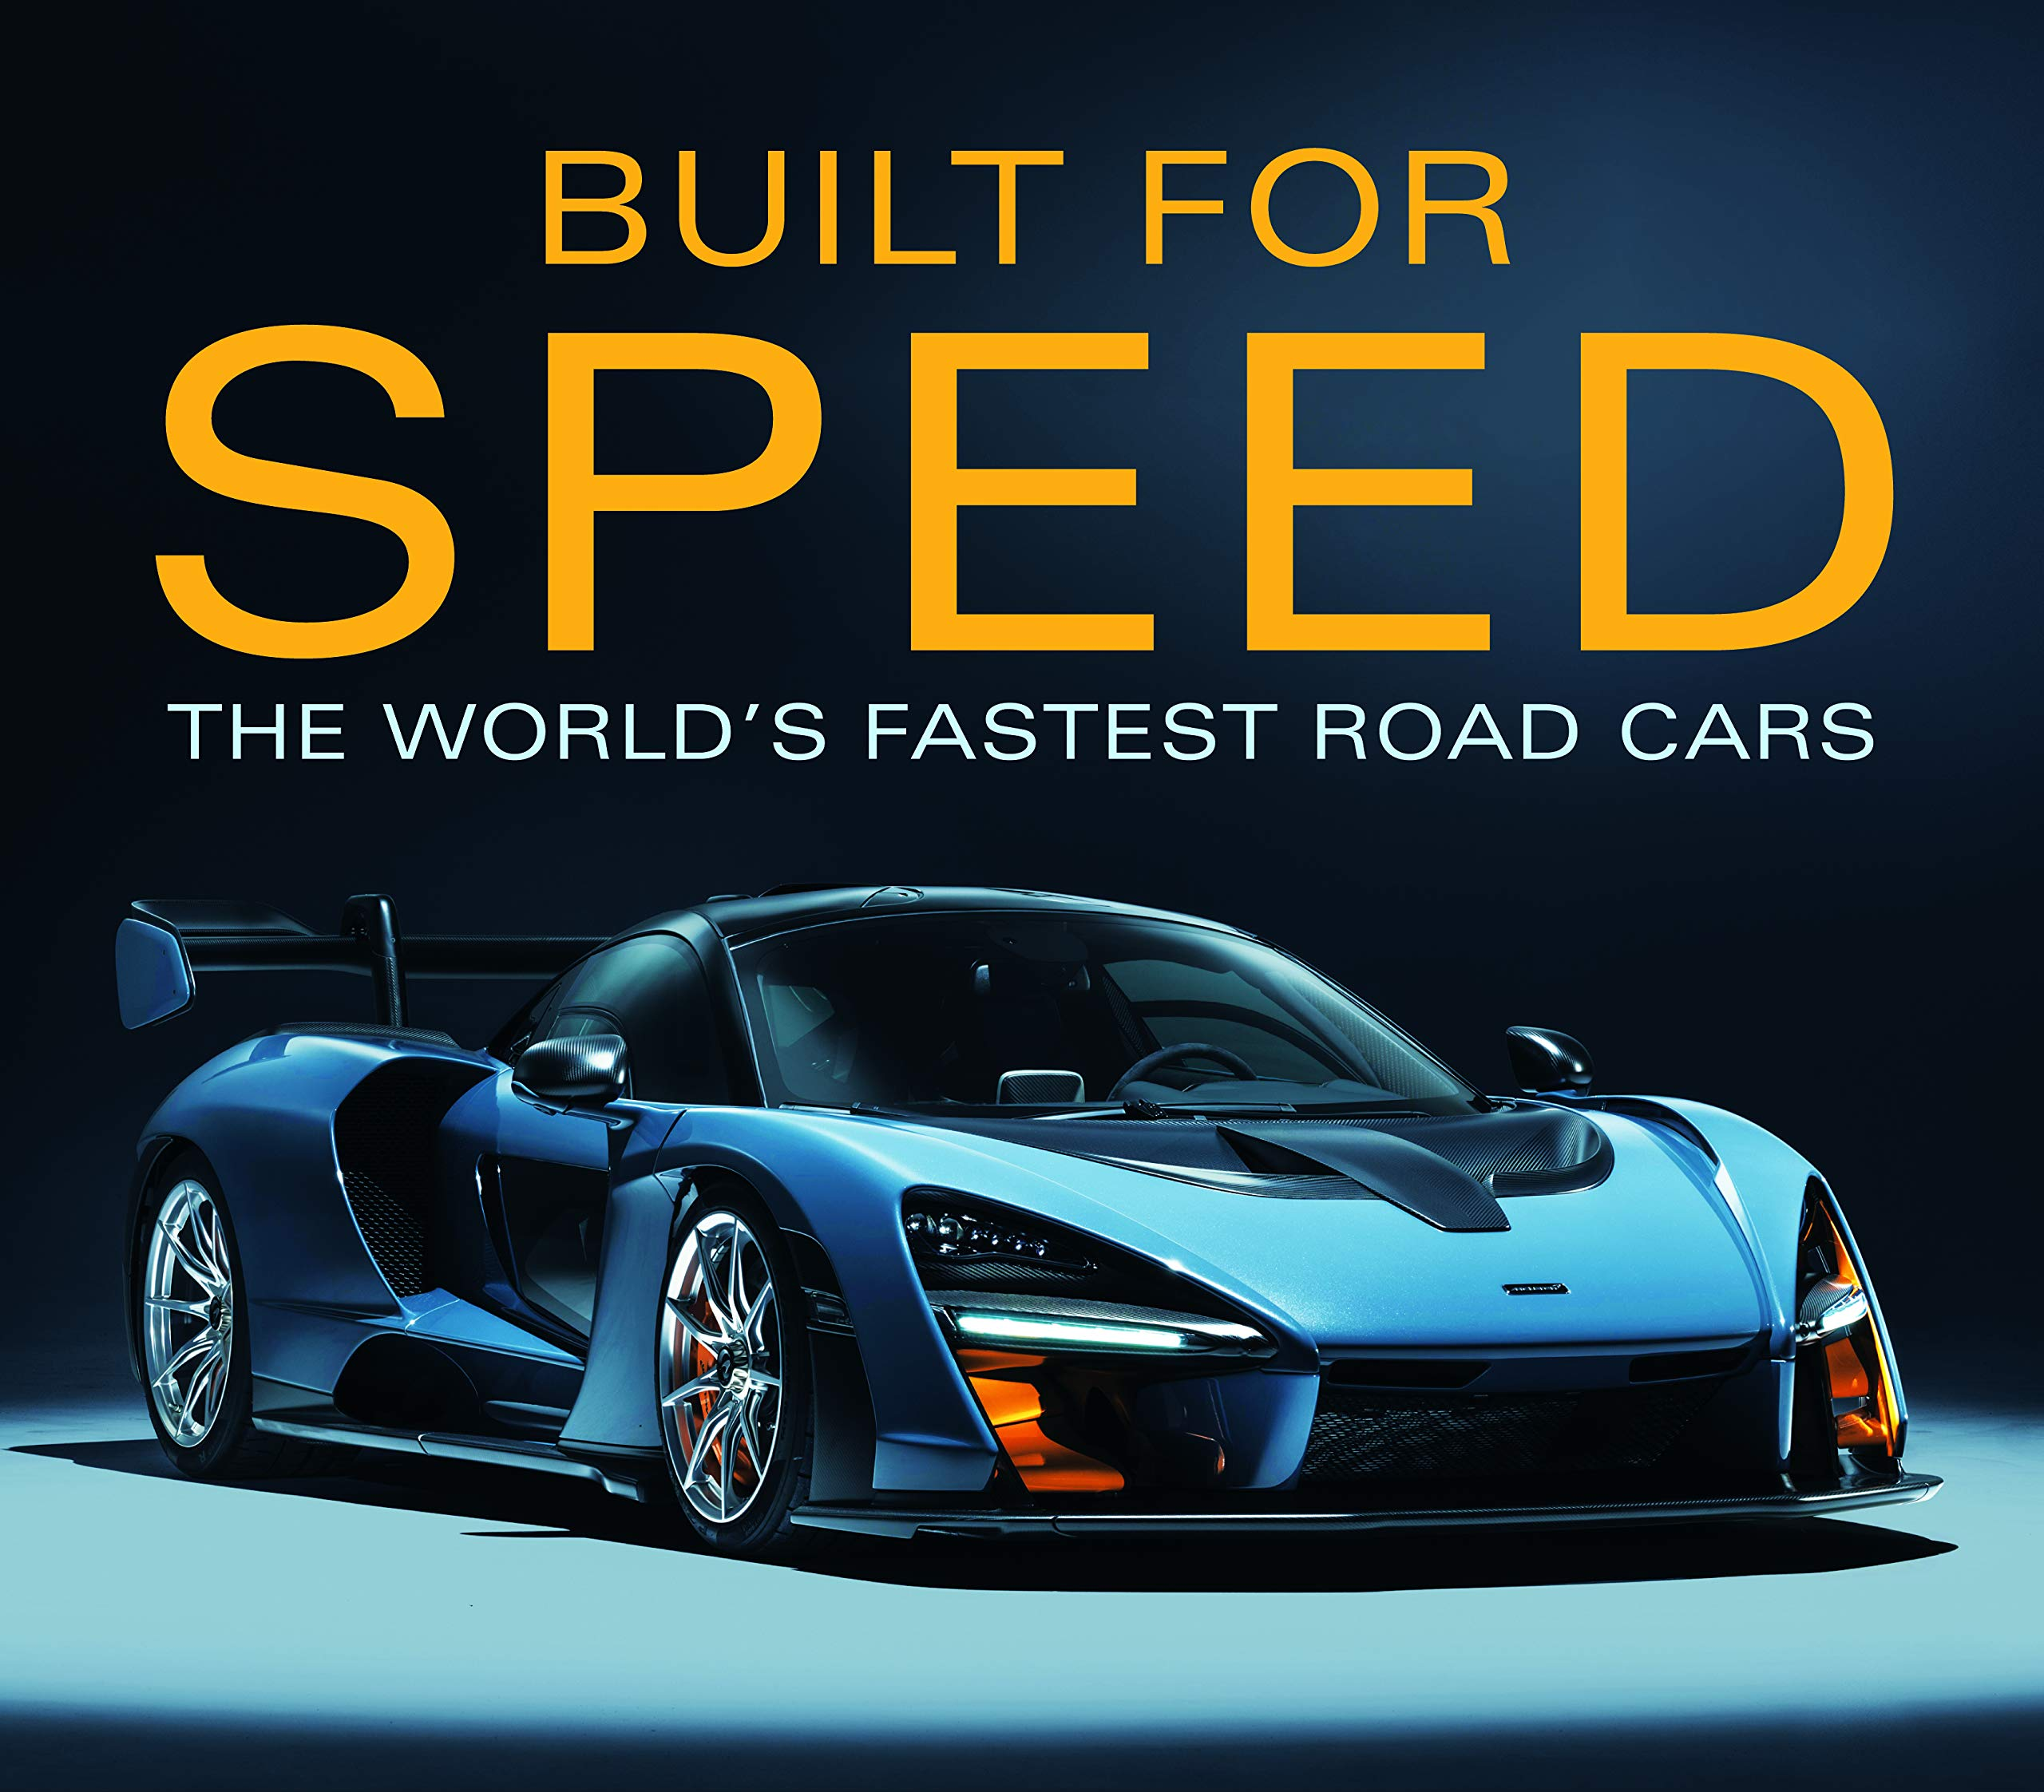 Built for Speed: The Worlds Fastest Road Cars Hardcover – February 15, 2019